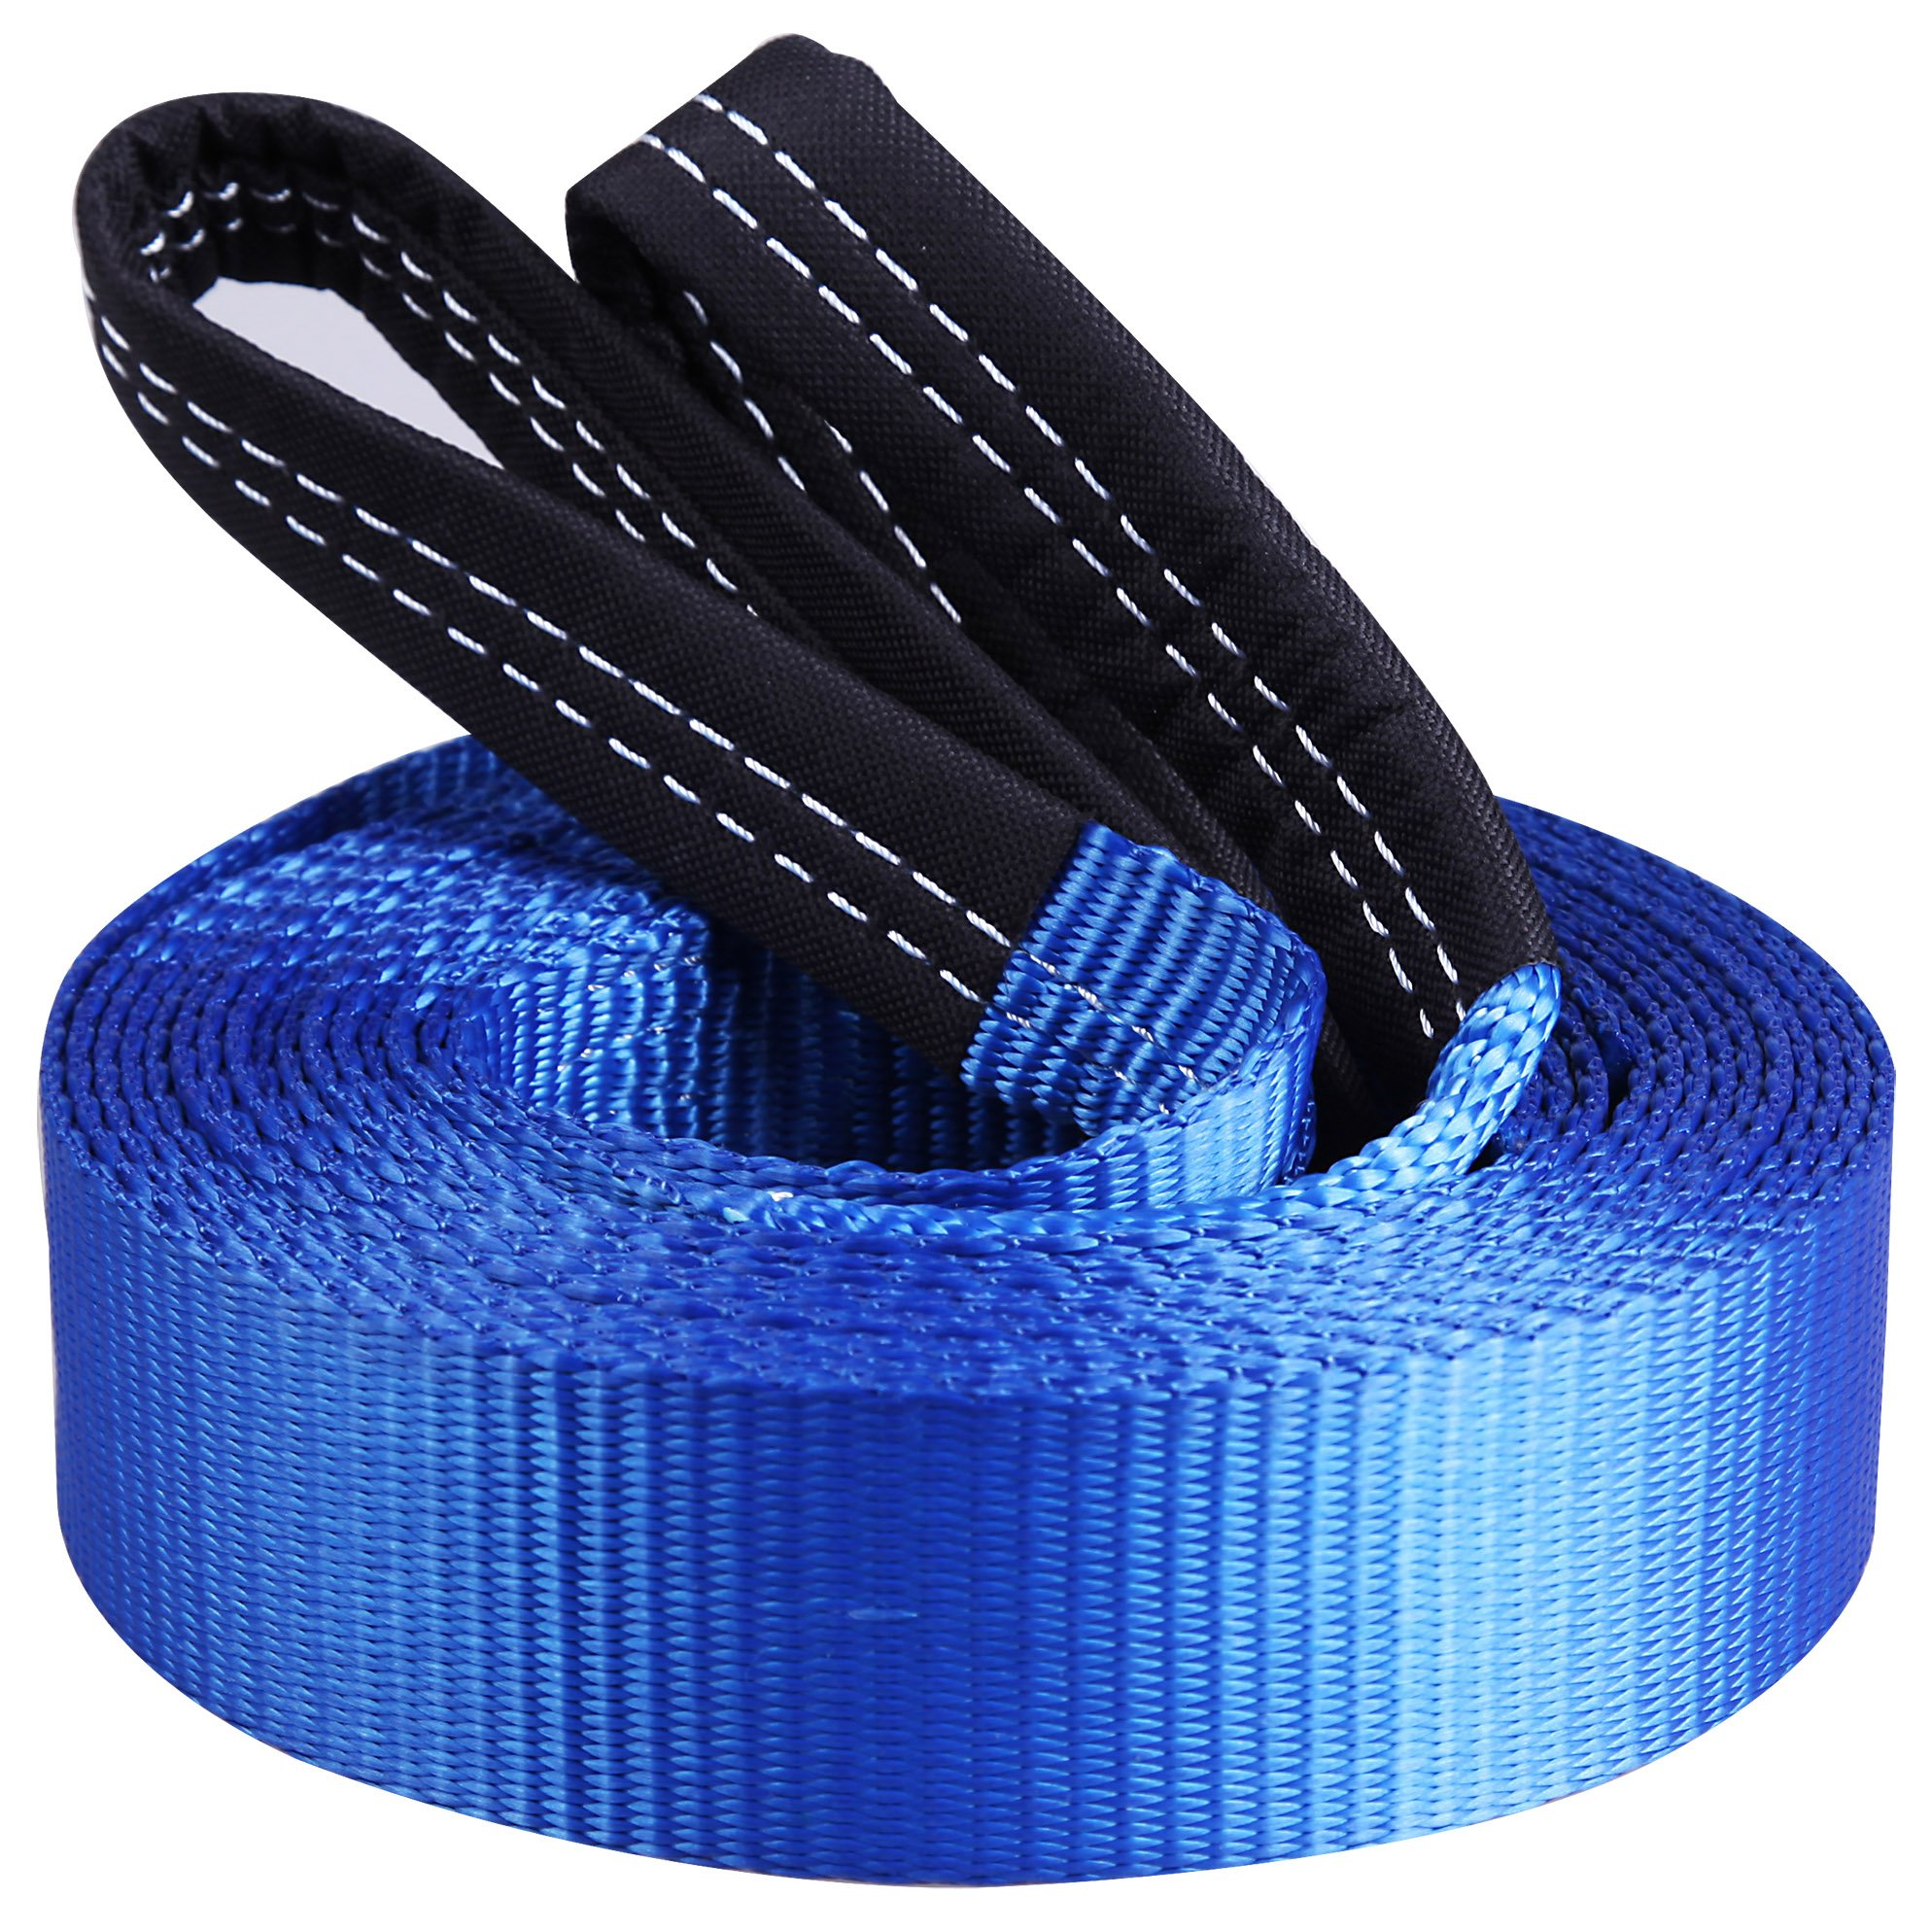 CARTMAN Heavy Duty Tow Belt 2'' x 20' 10,000Lbs, Tow Strap with Reinforced Loops by CARTMAN